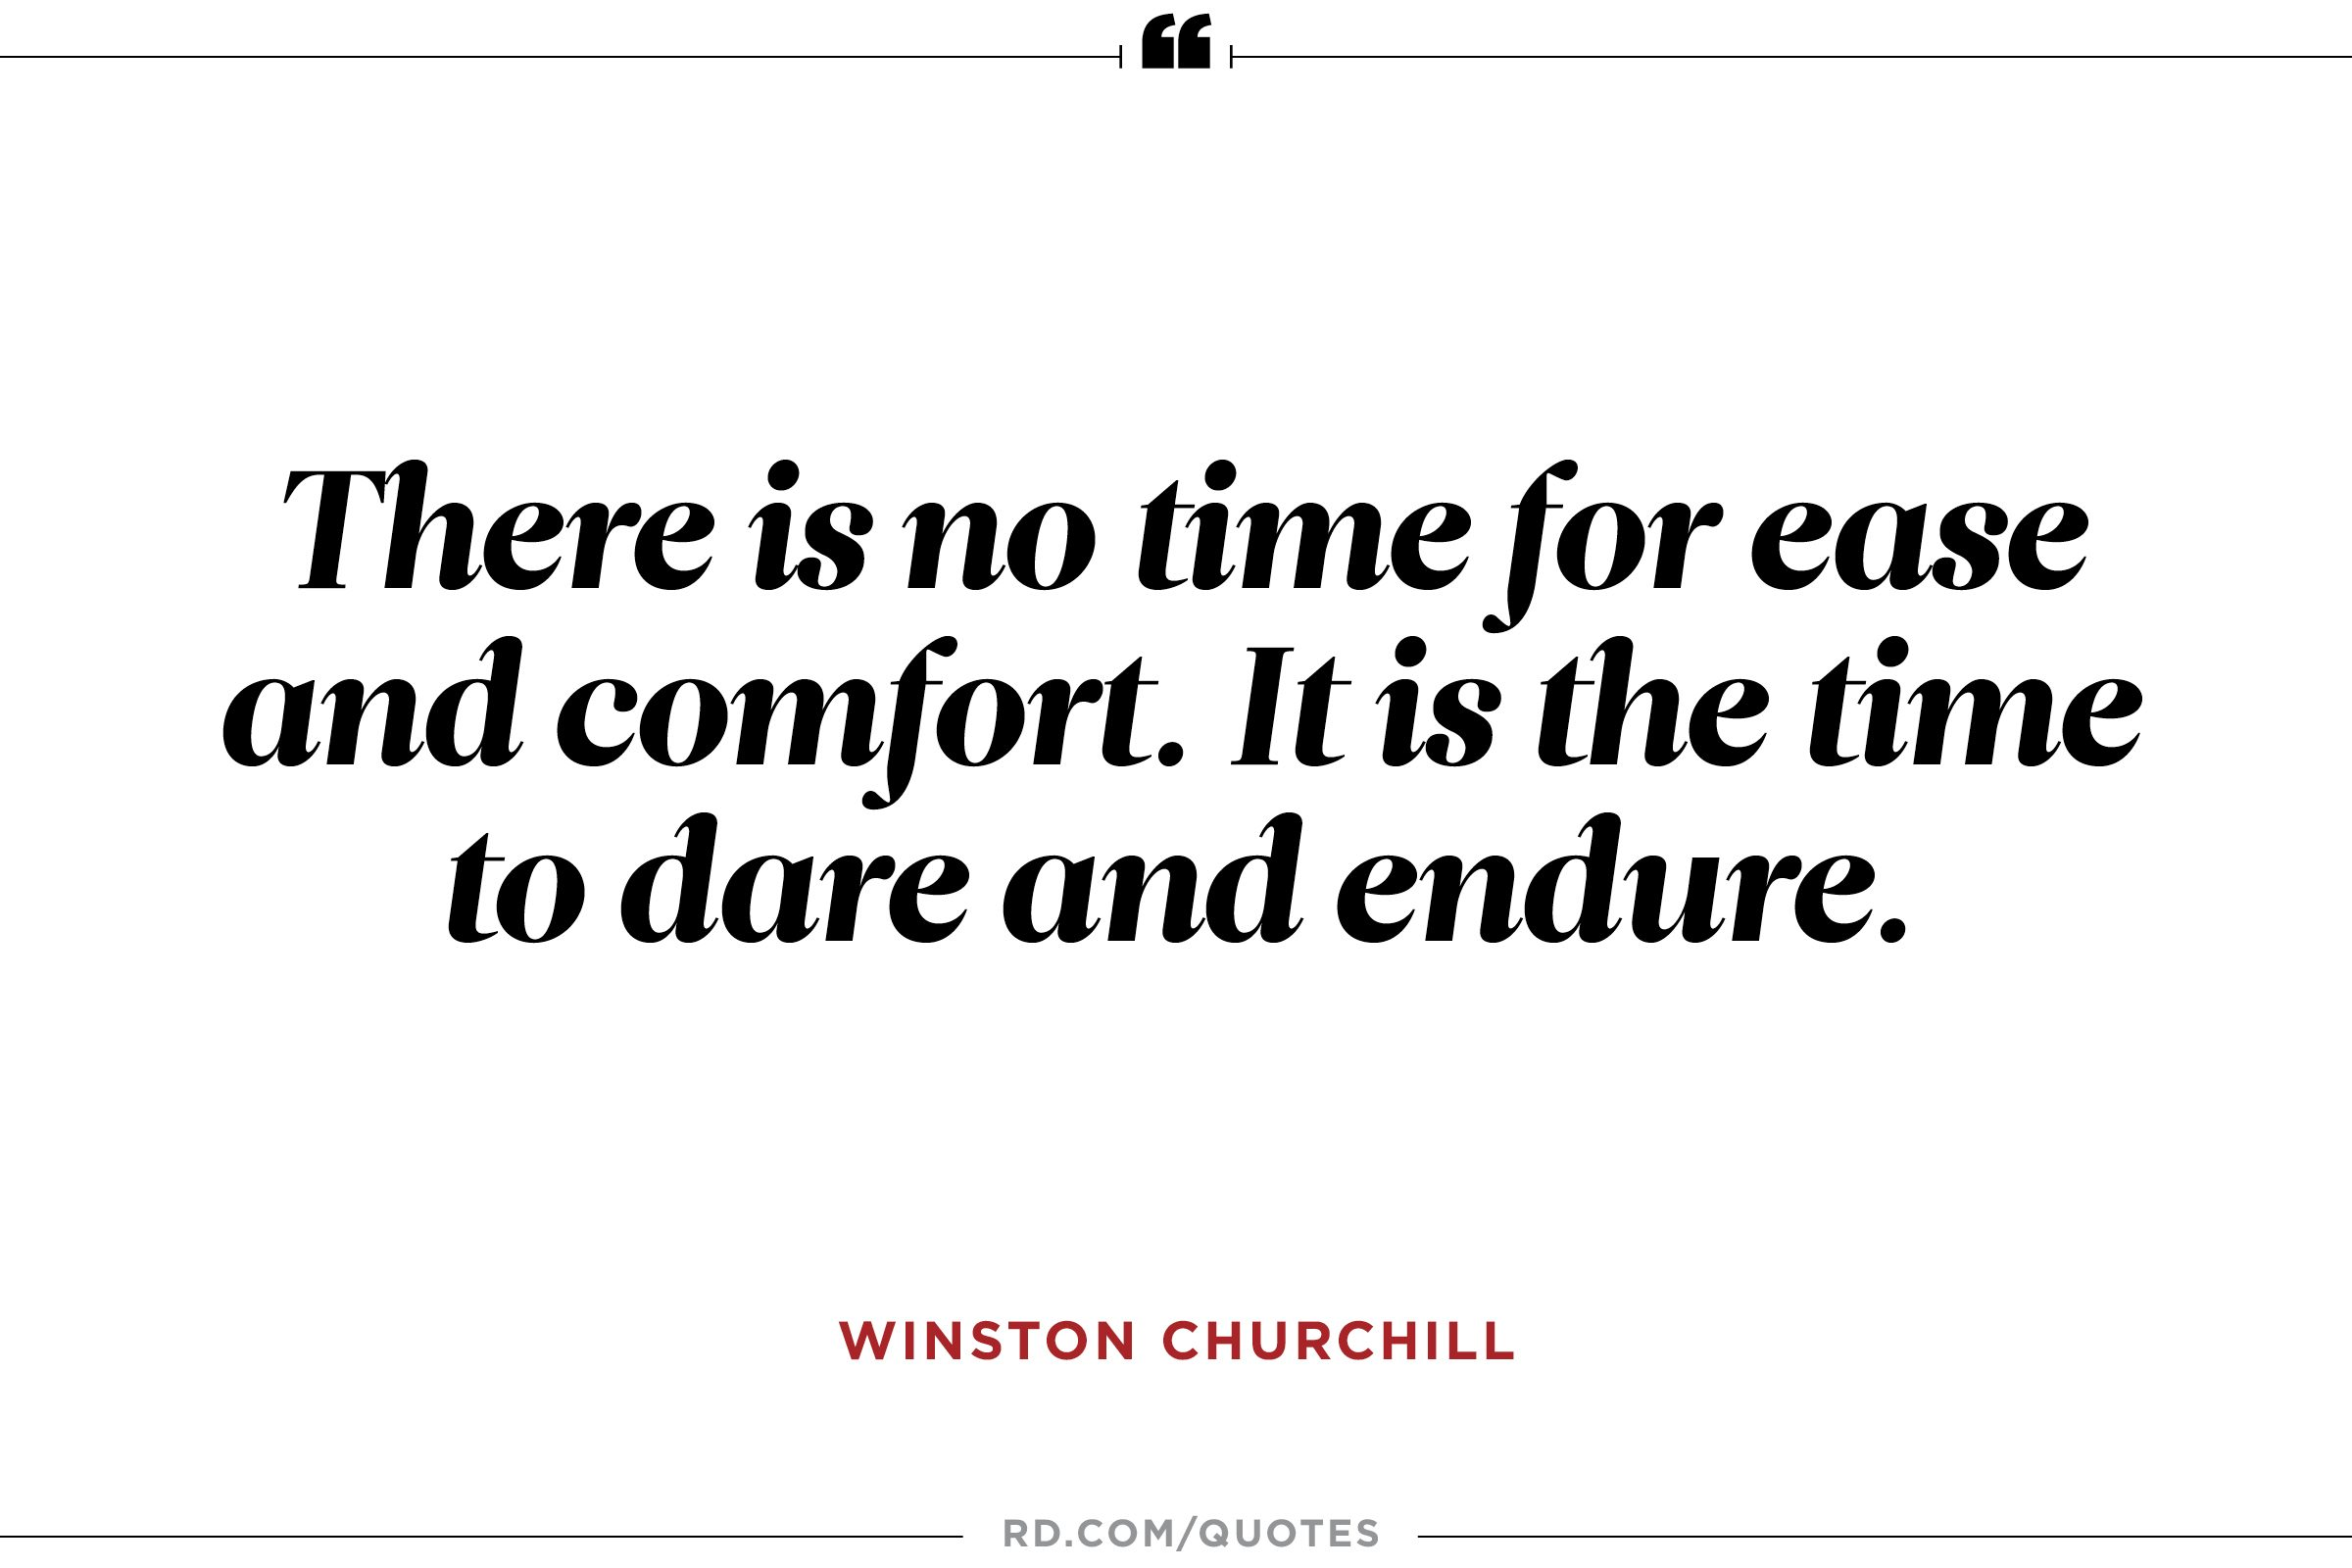 There is no time for ease and comfort.